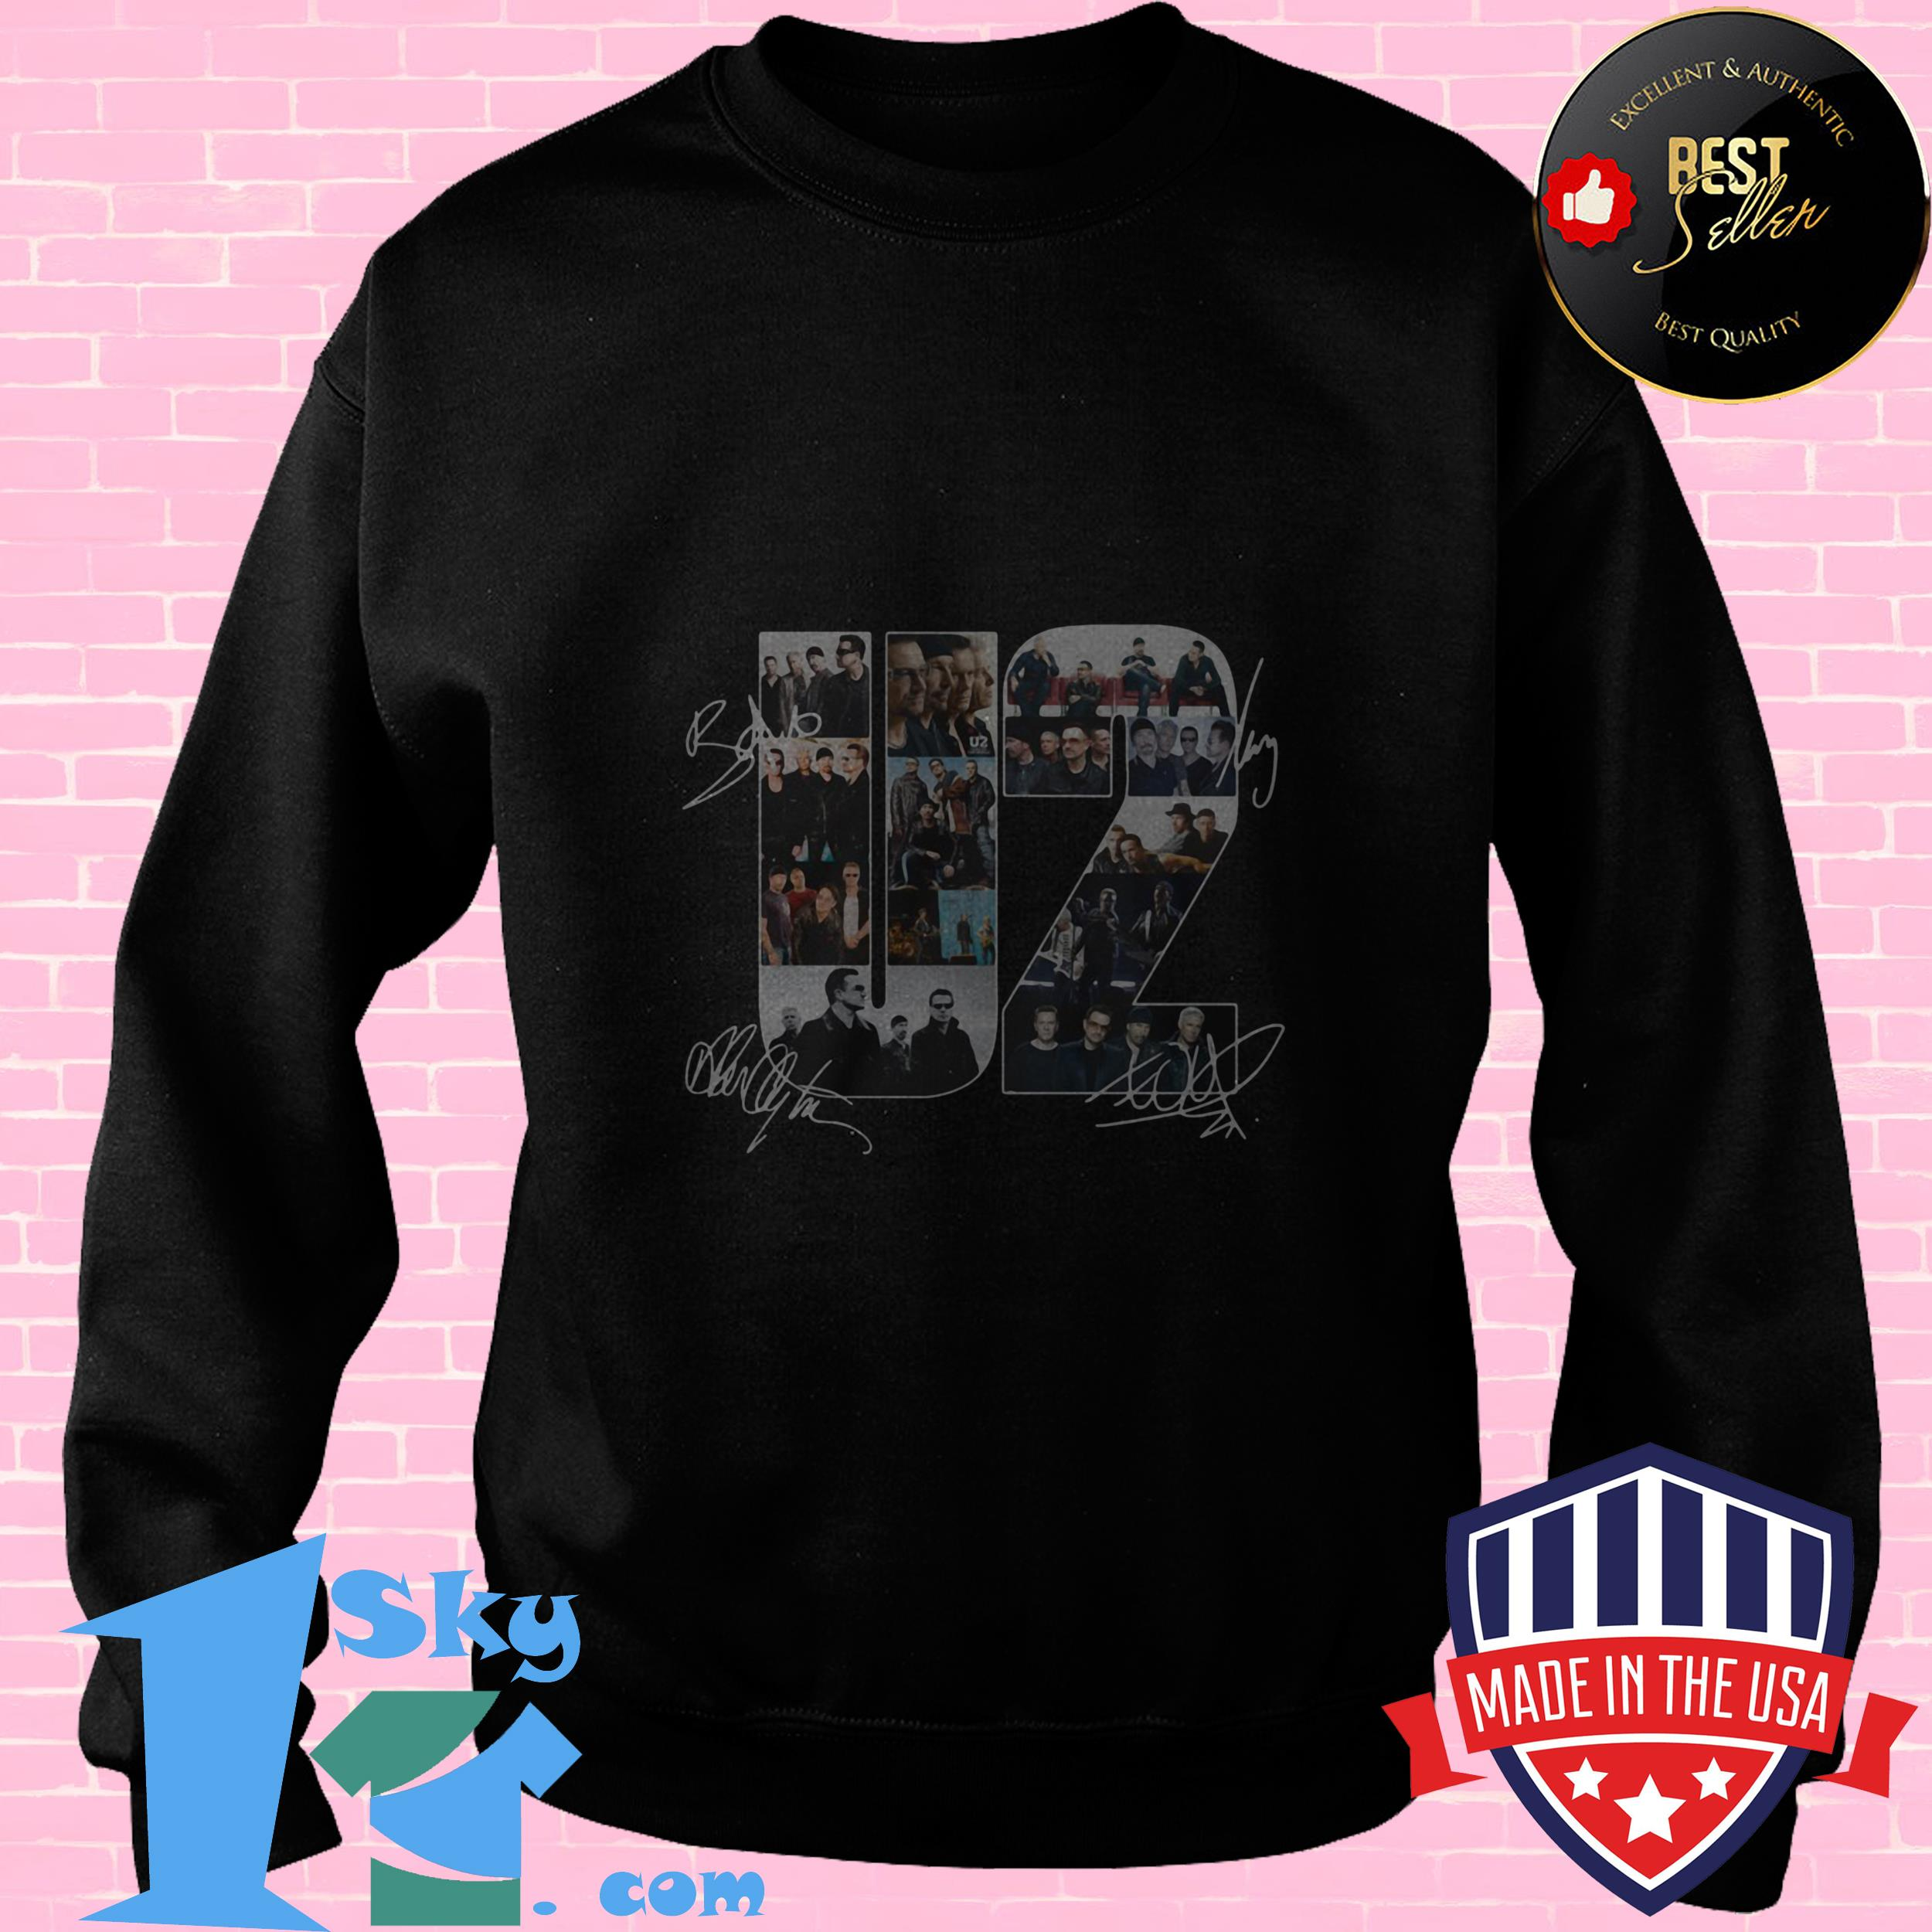 official u2 members signatures sweatshirt - Official U2 Members Signatures shirt